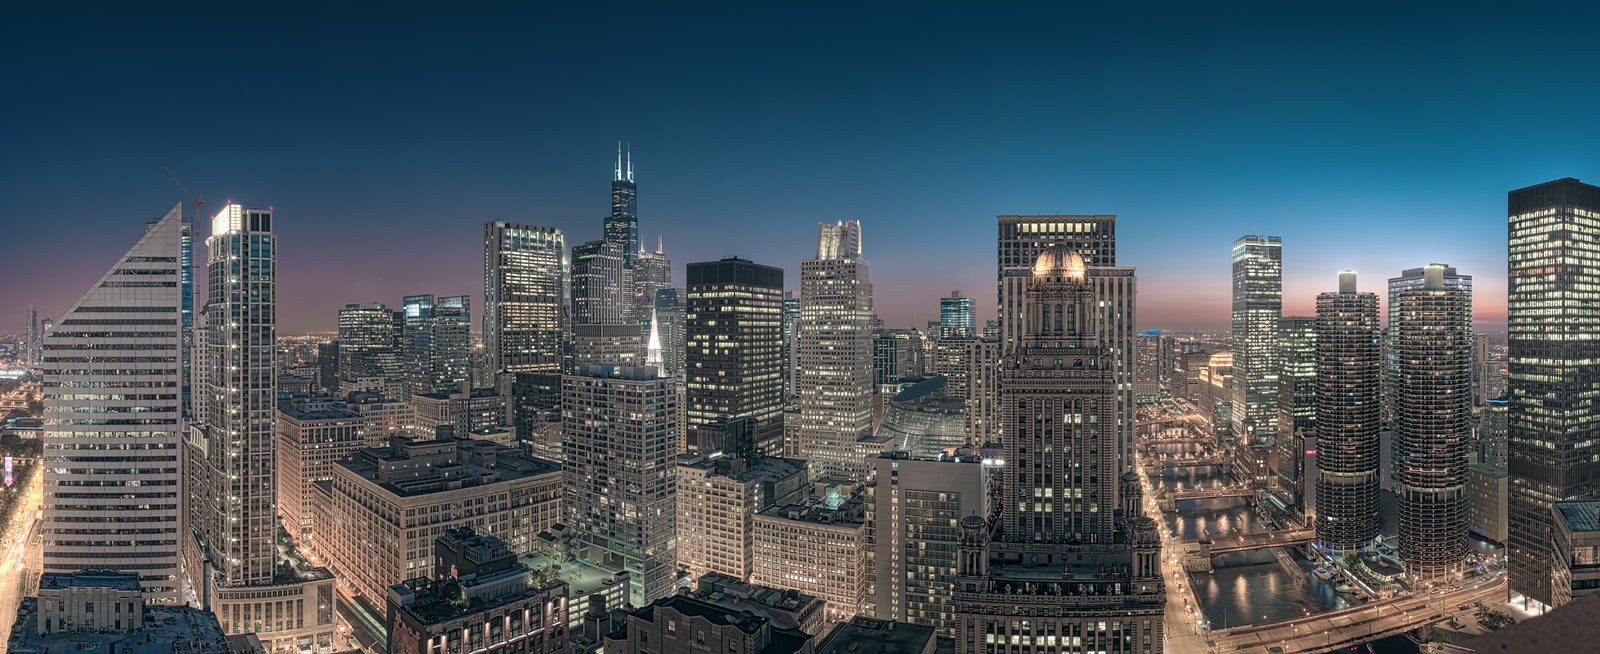 Sears Tower Skyline - Chicago High Resolution Cityscape Photo Print